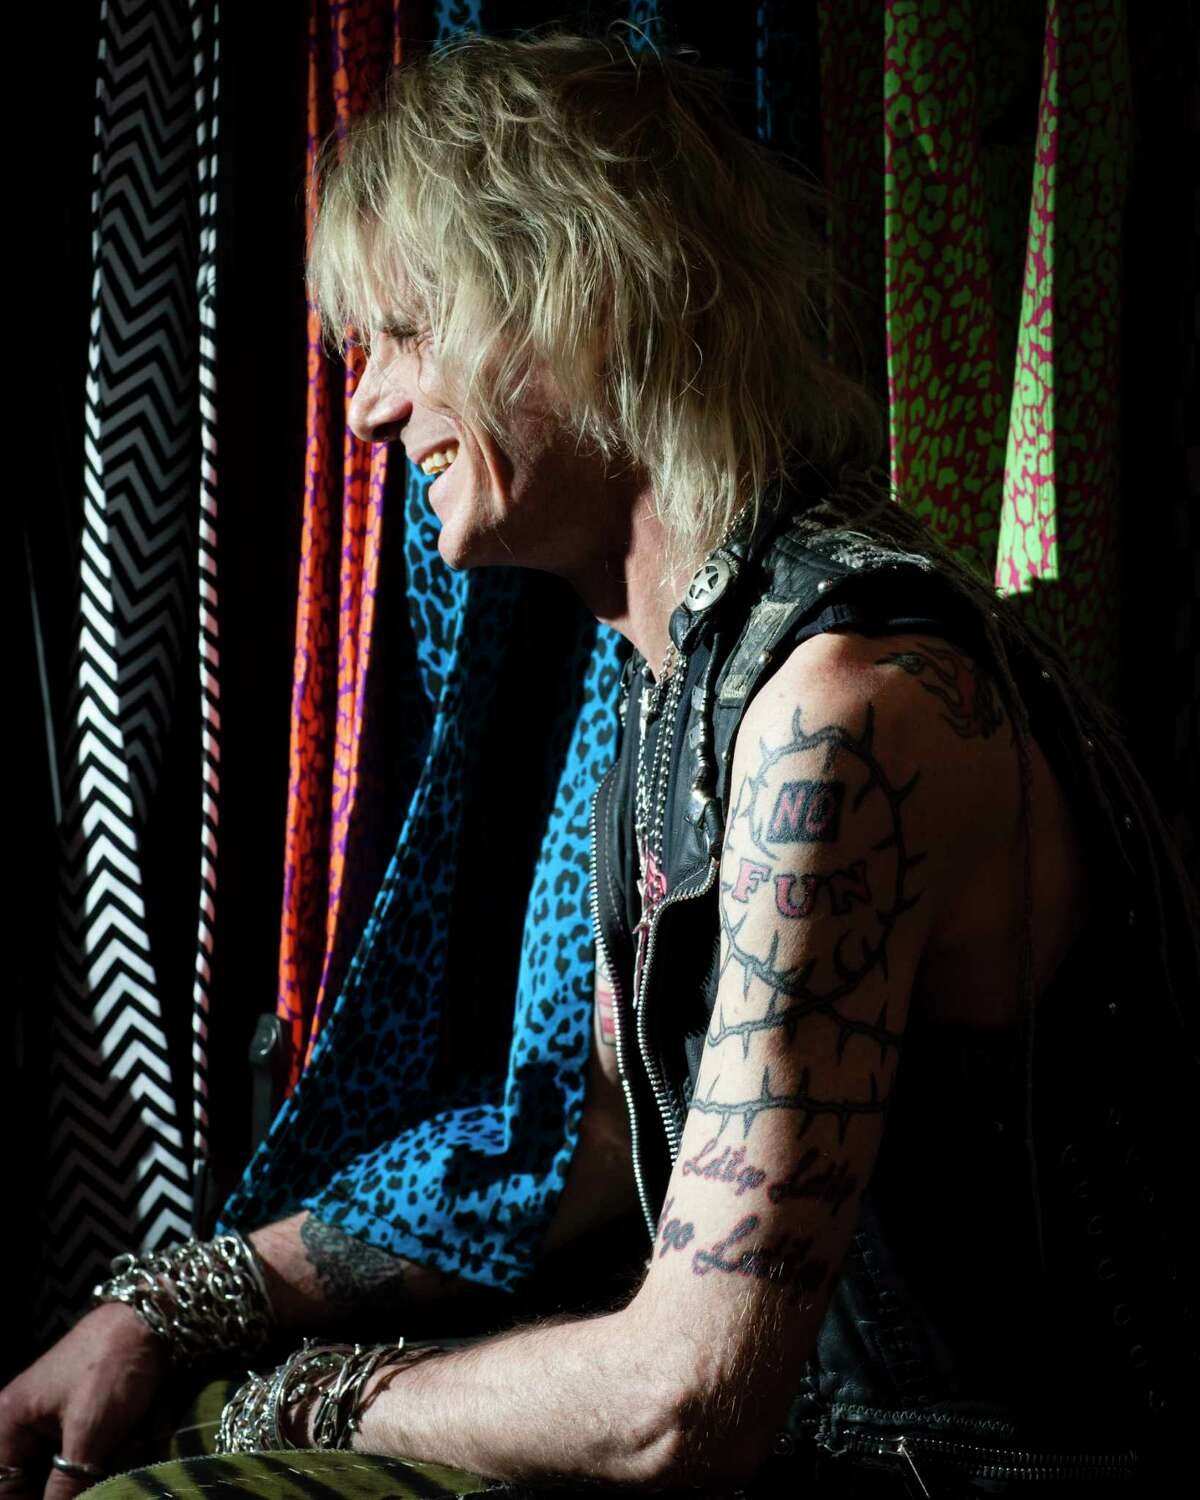 Jimmy Webb, the manager and buyer at Trash and Vaudeville, in New York, April 30, 2013. Trash and Vaudeville, around since 1975, remains a fixture in a very different East Village. (Deidre Schoo/The New York Times)